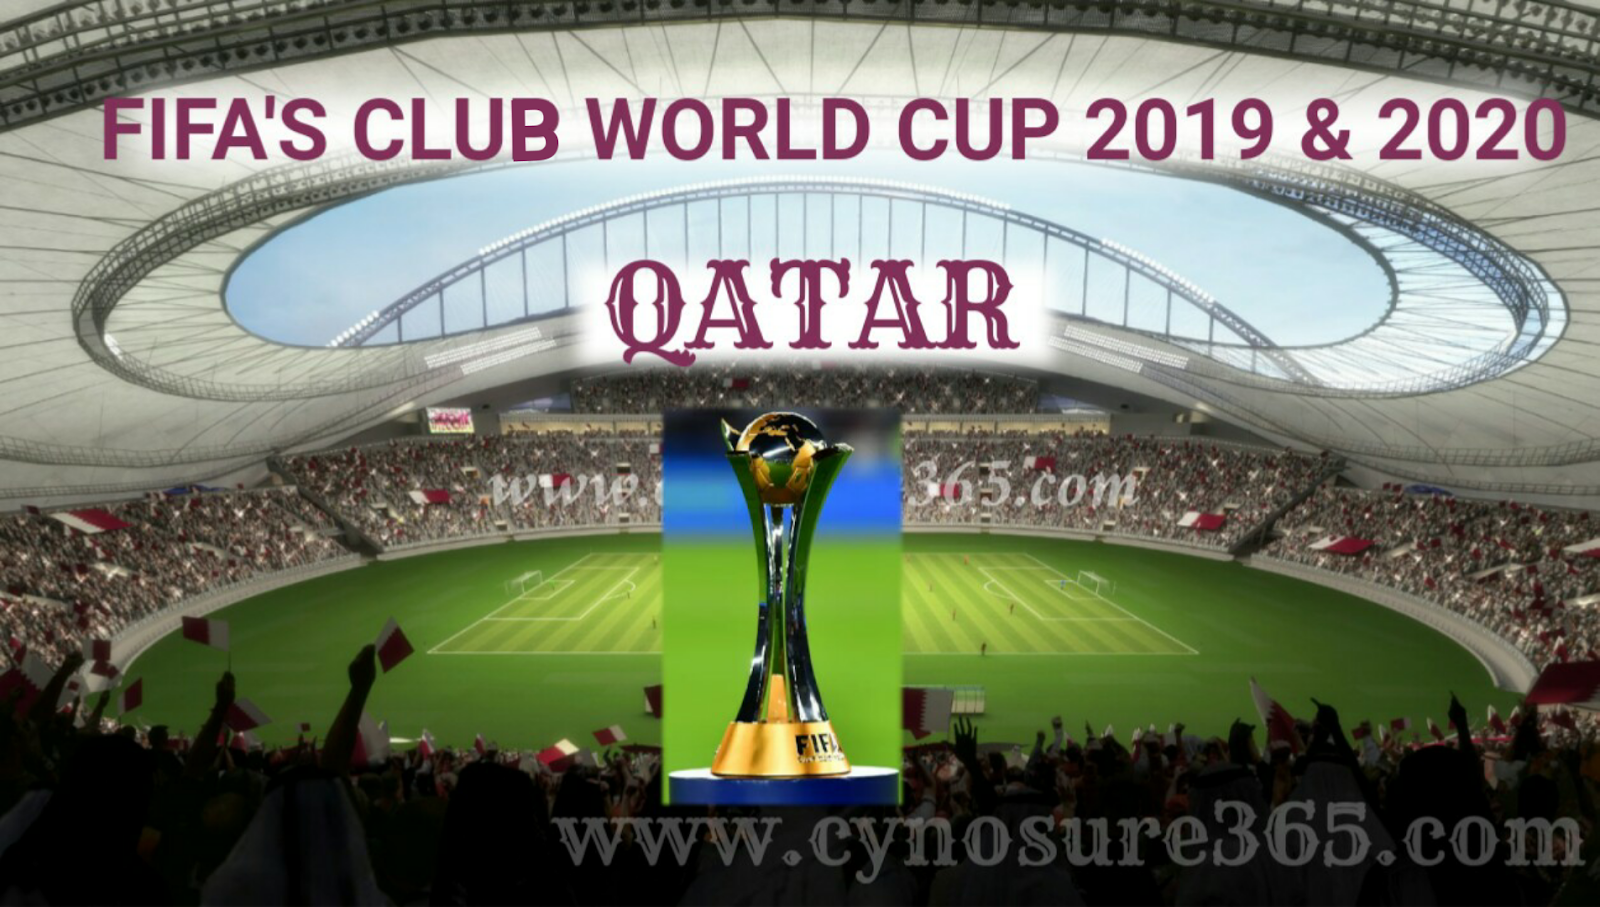 Who Won The World Cup 2020 Soccer.Qatar Will Host Fifa S Club World Cup 2019 2020 Edition